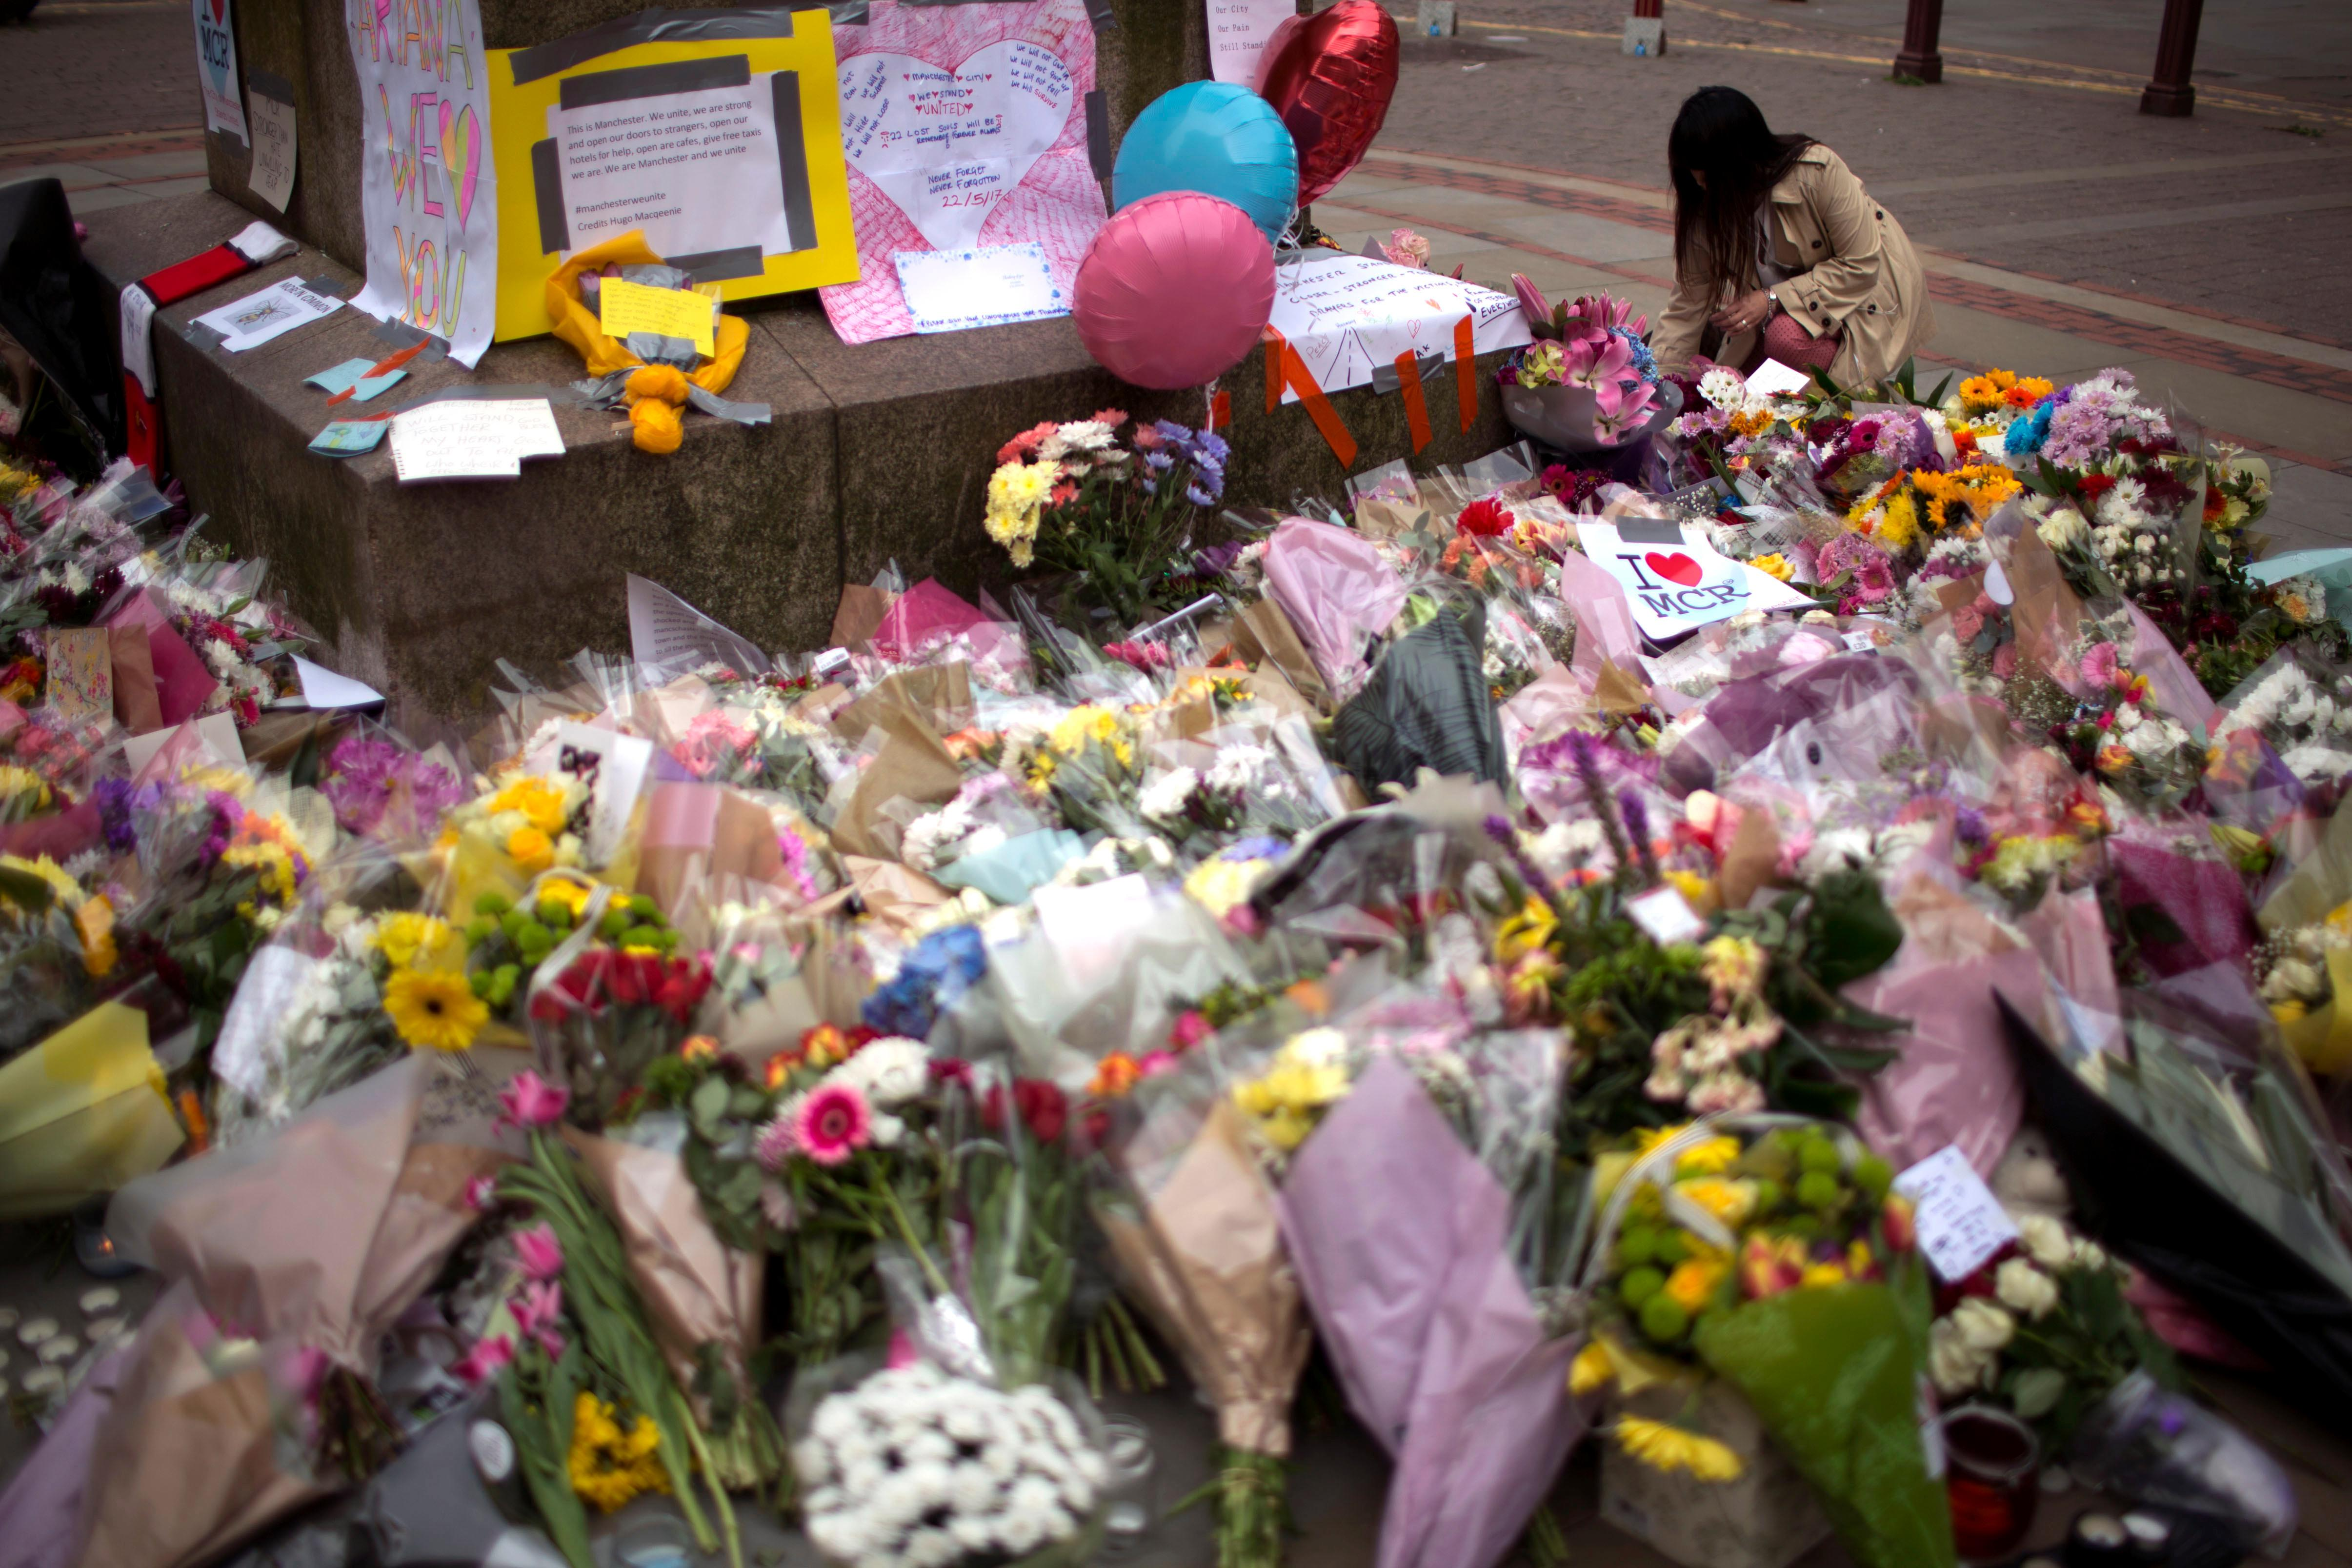 A woman places flowers at a memorial for the victims of a suicide attack at a concert by Ariana Grande that killed more than 20 people Monday night in central Manchester, Britain, Wednesday, May 24, 2017. (AP Photo/Emilio Morenatti)